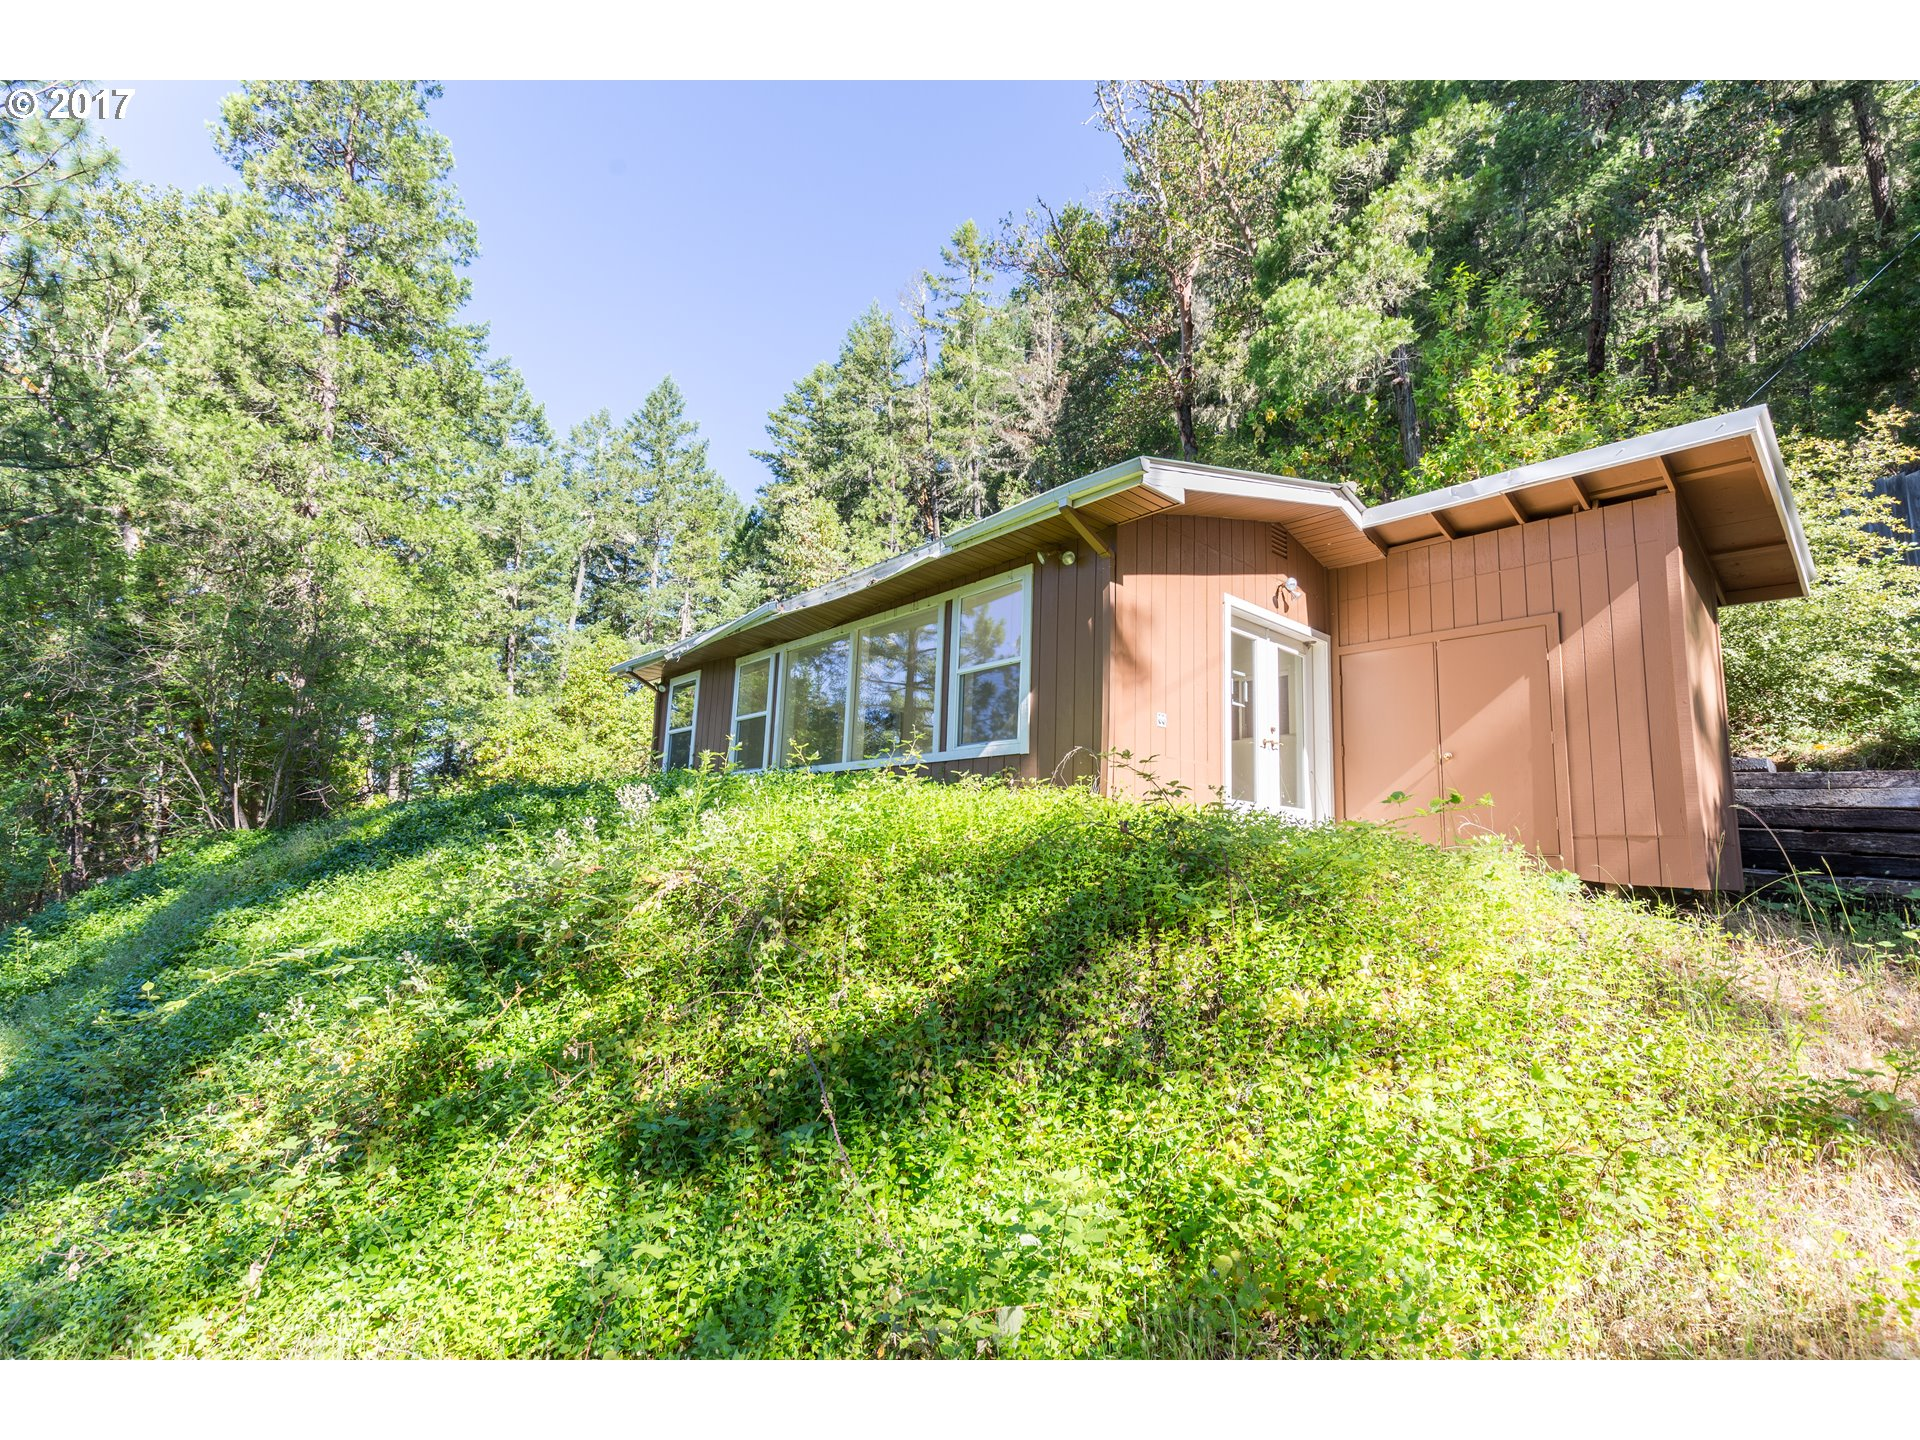 Rogue River, OR 1 Bedroom Home For Sale